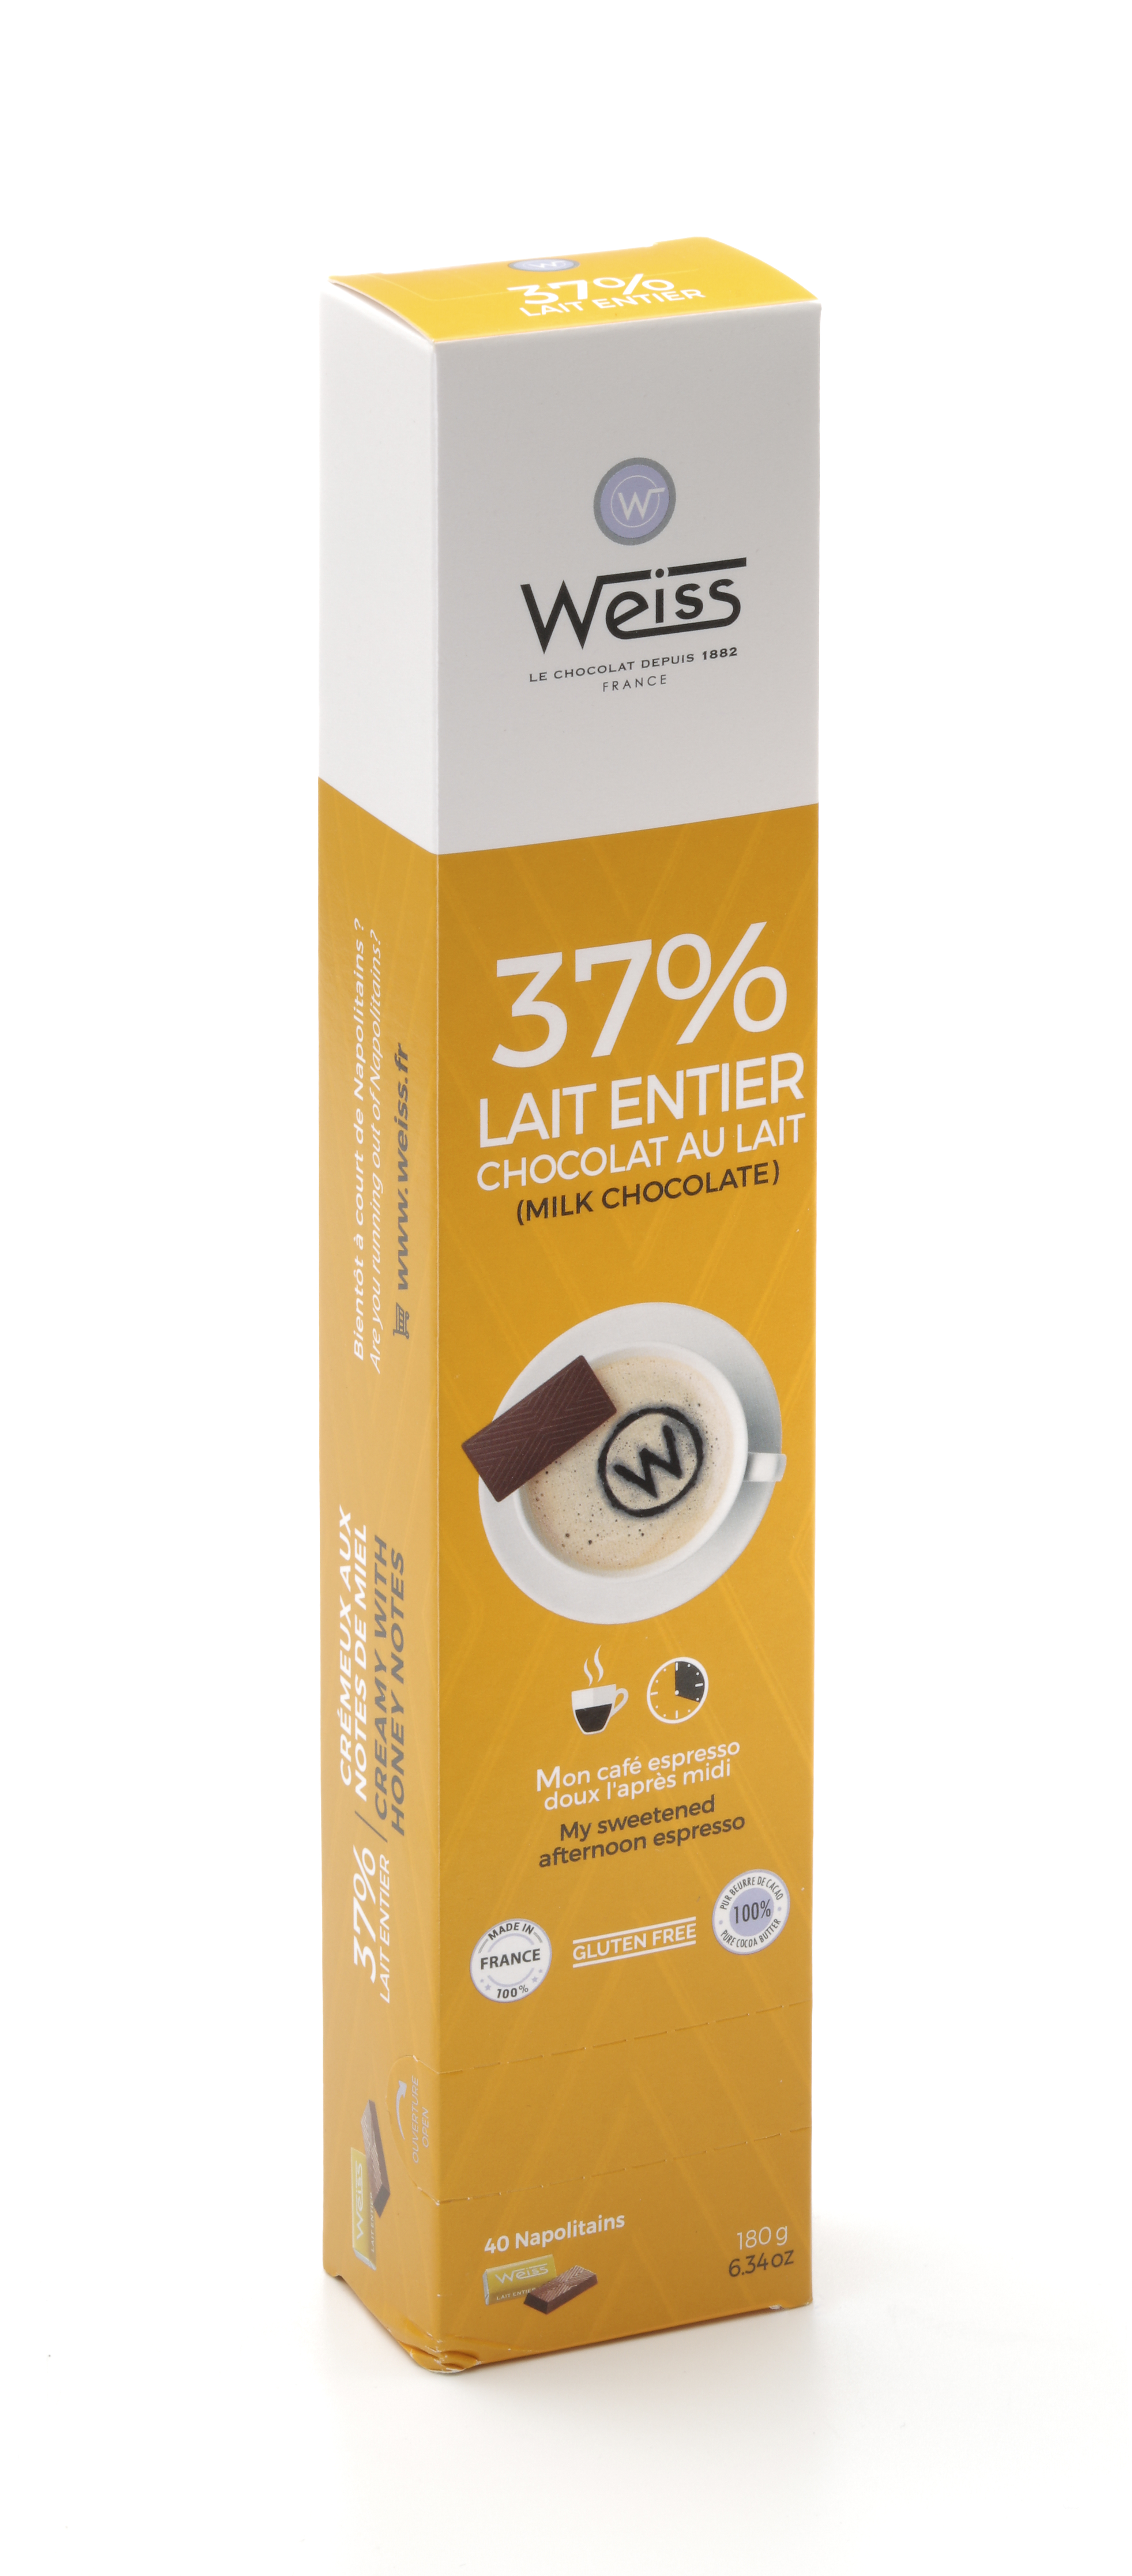 Napolitains lait entier 37%, Weiss (x 40, 180 g)